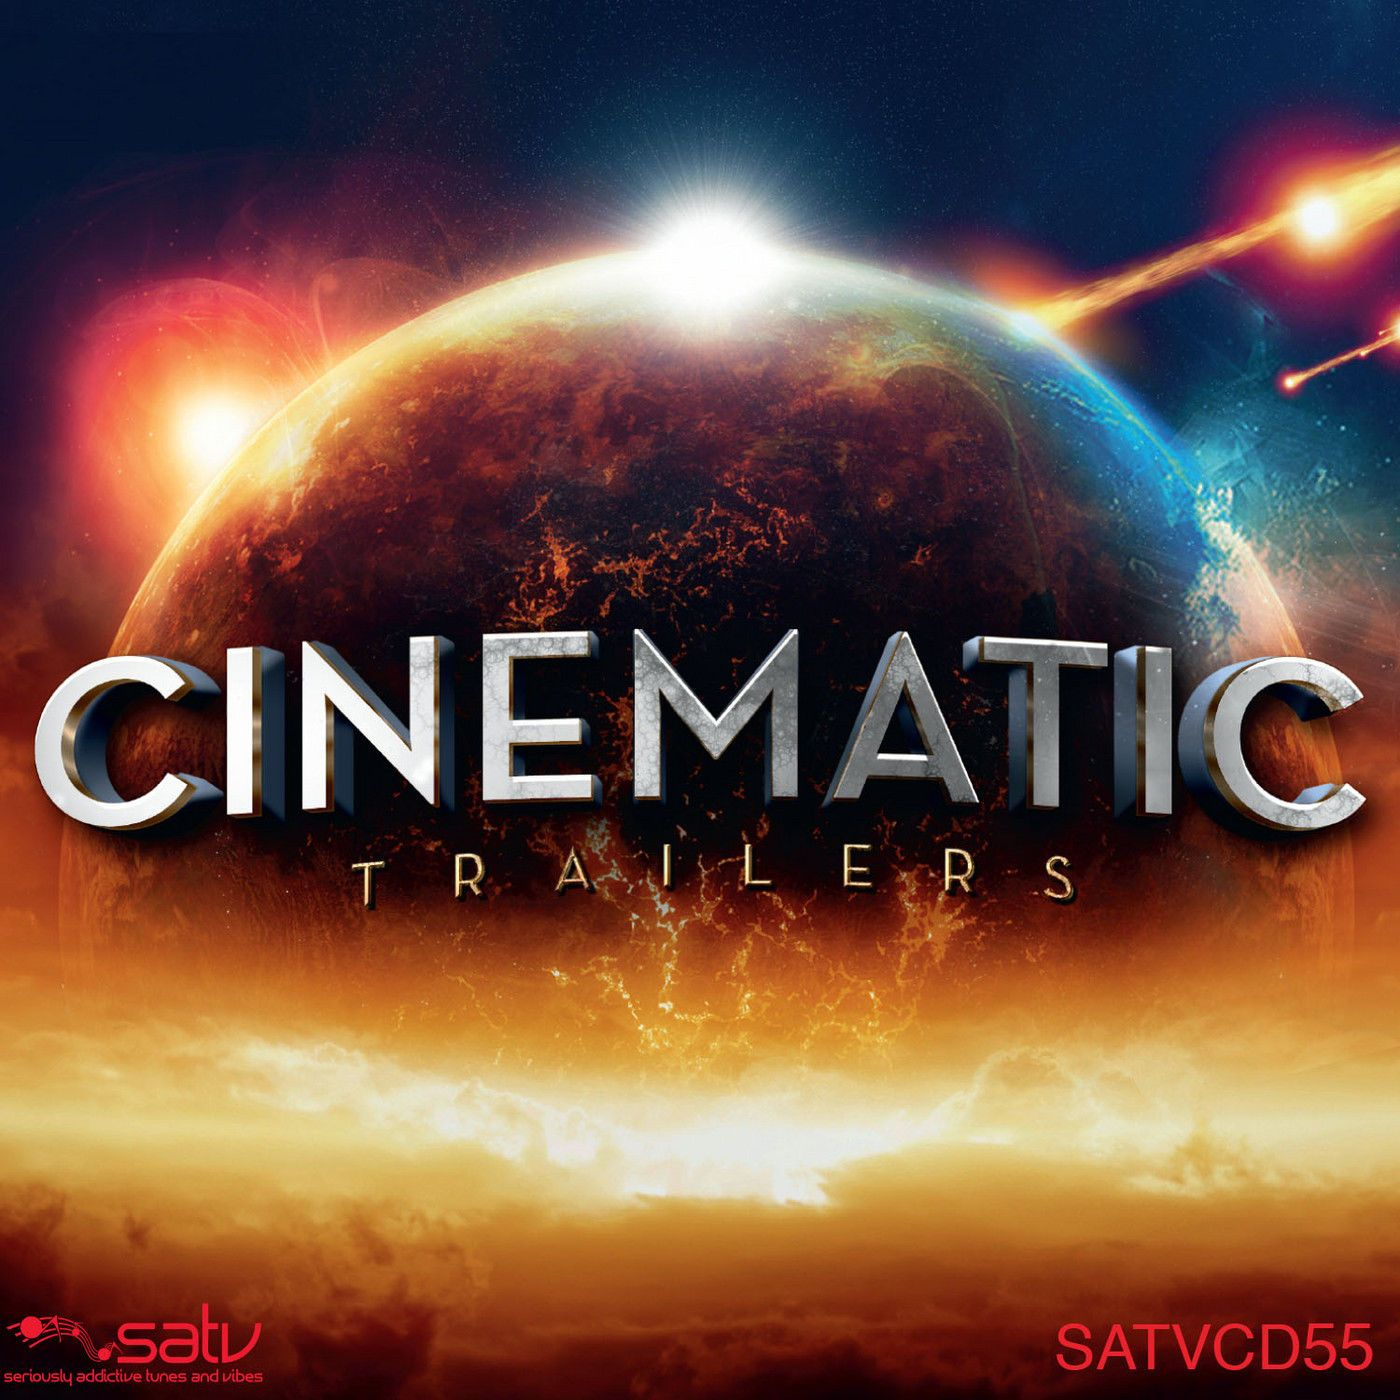 """Preview, buy and download songs from the album Cinematic Trailers, including """"Protector"""", """"Arch of Titan"""", """"Virtus"""" and many more. Buy the album for £3.99. Songs start at £0.79."""